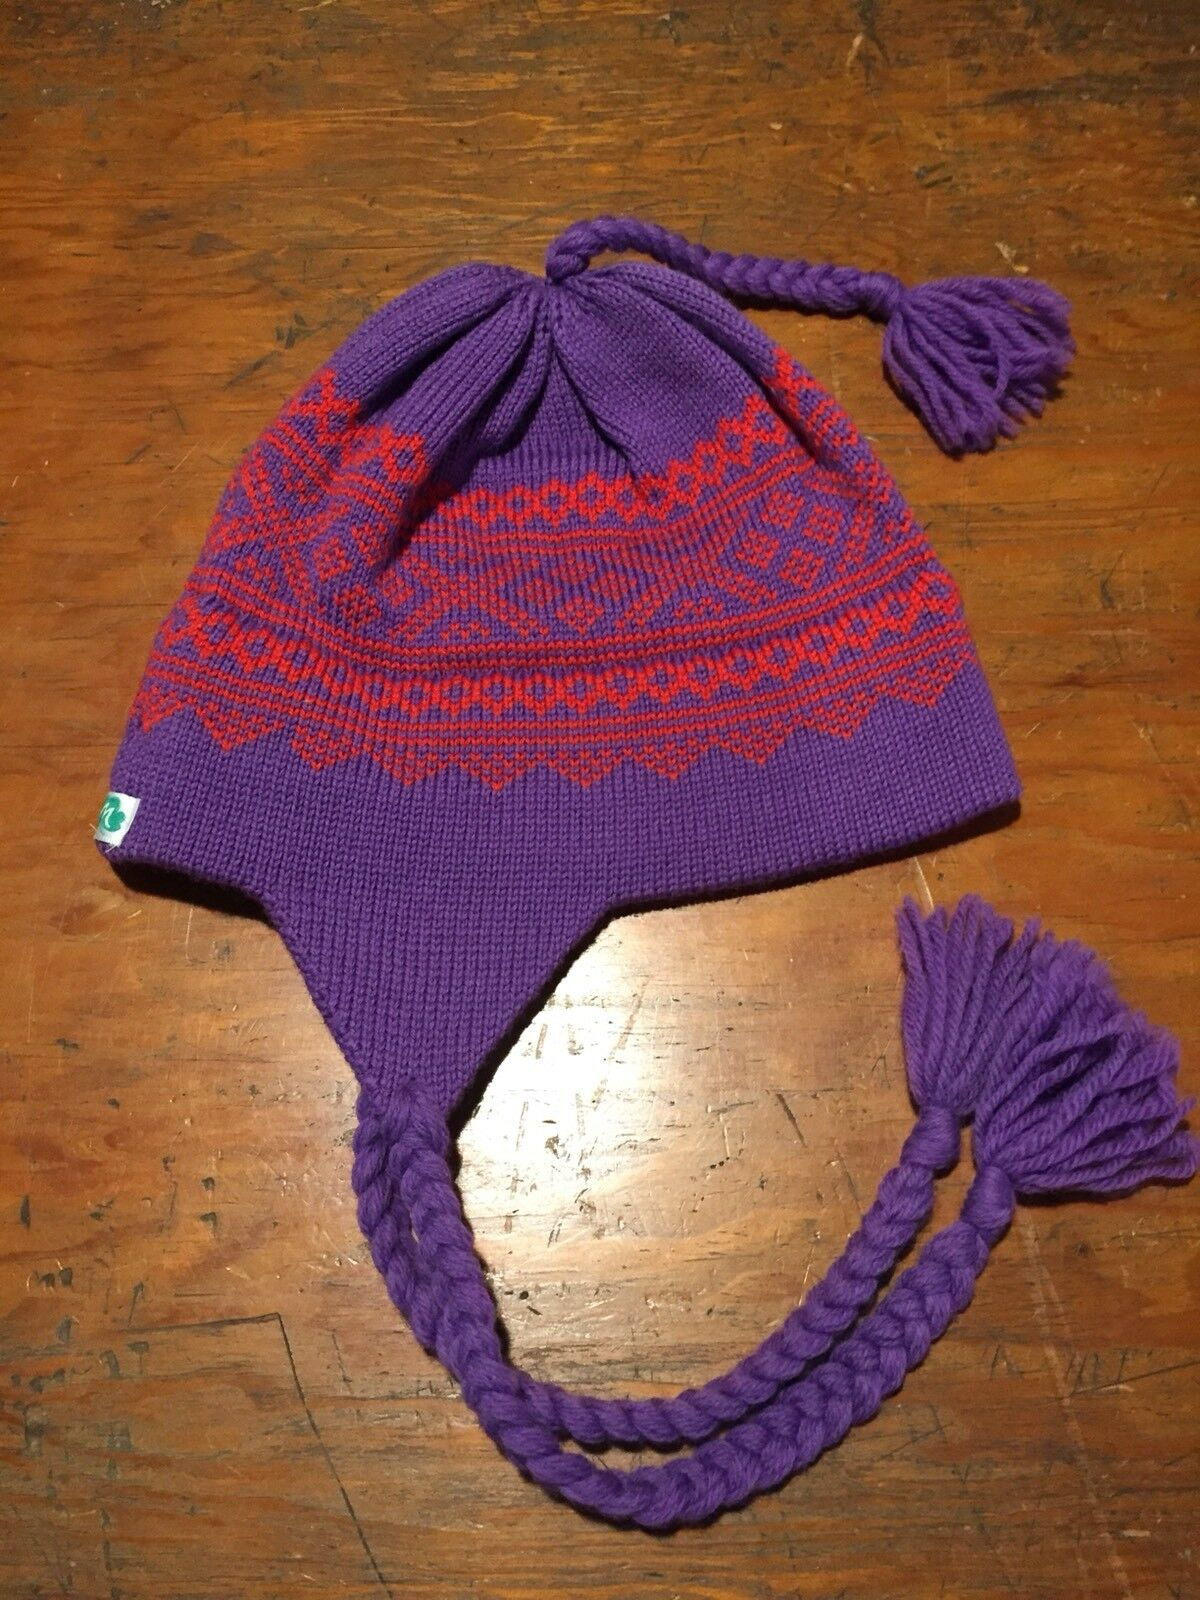 Original Moriarty Hat - New-Made in Stowe, VT  J